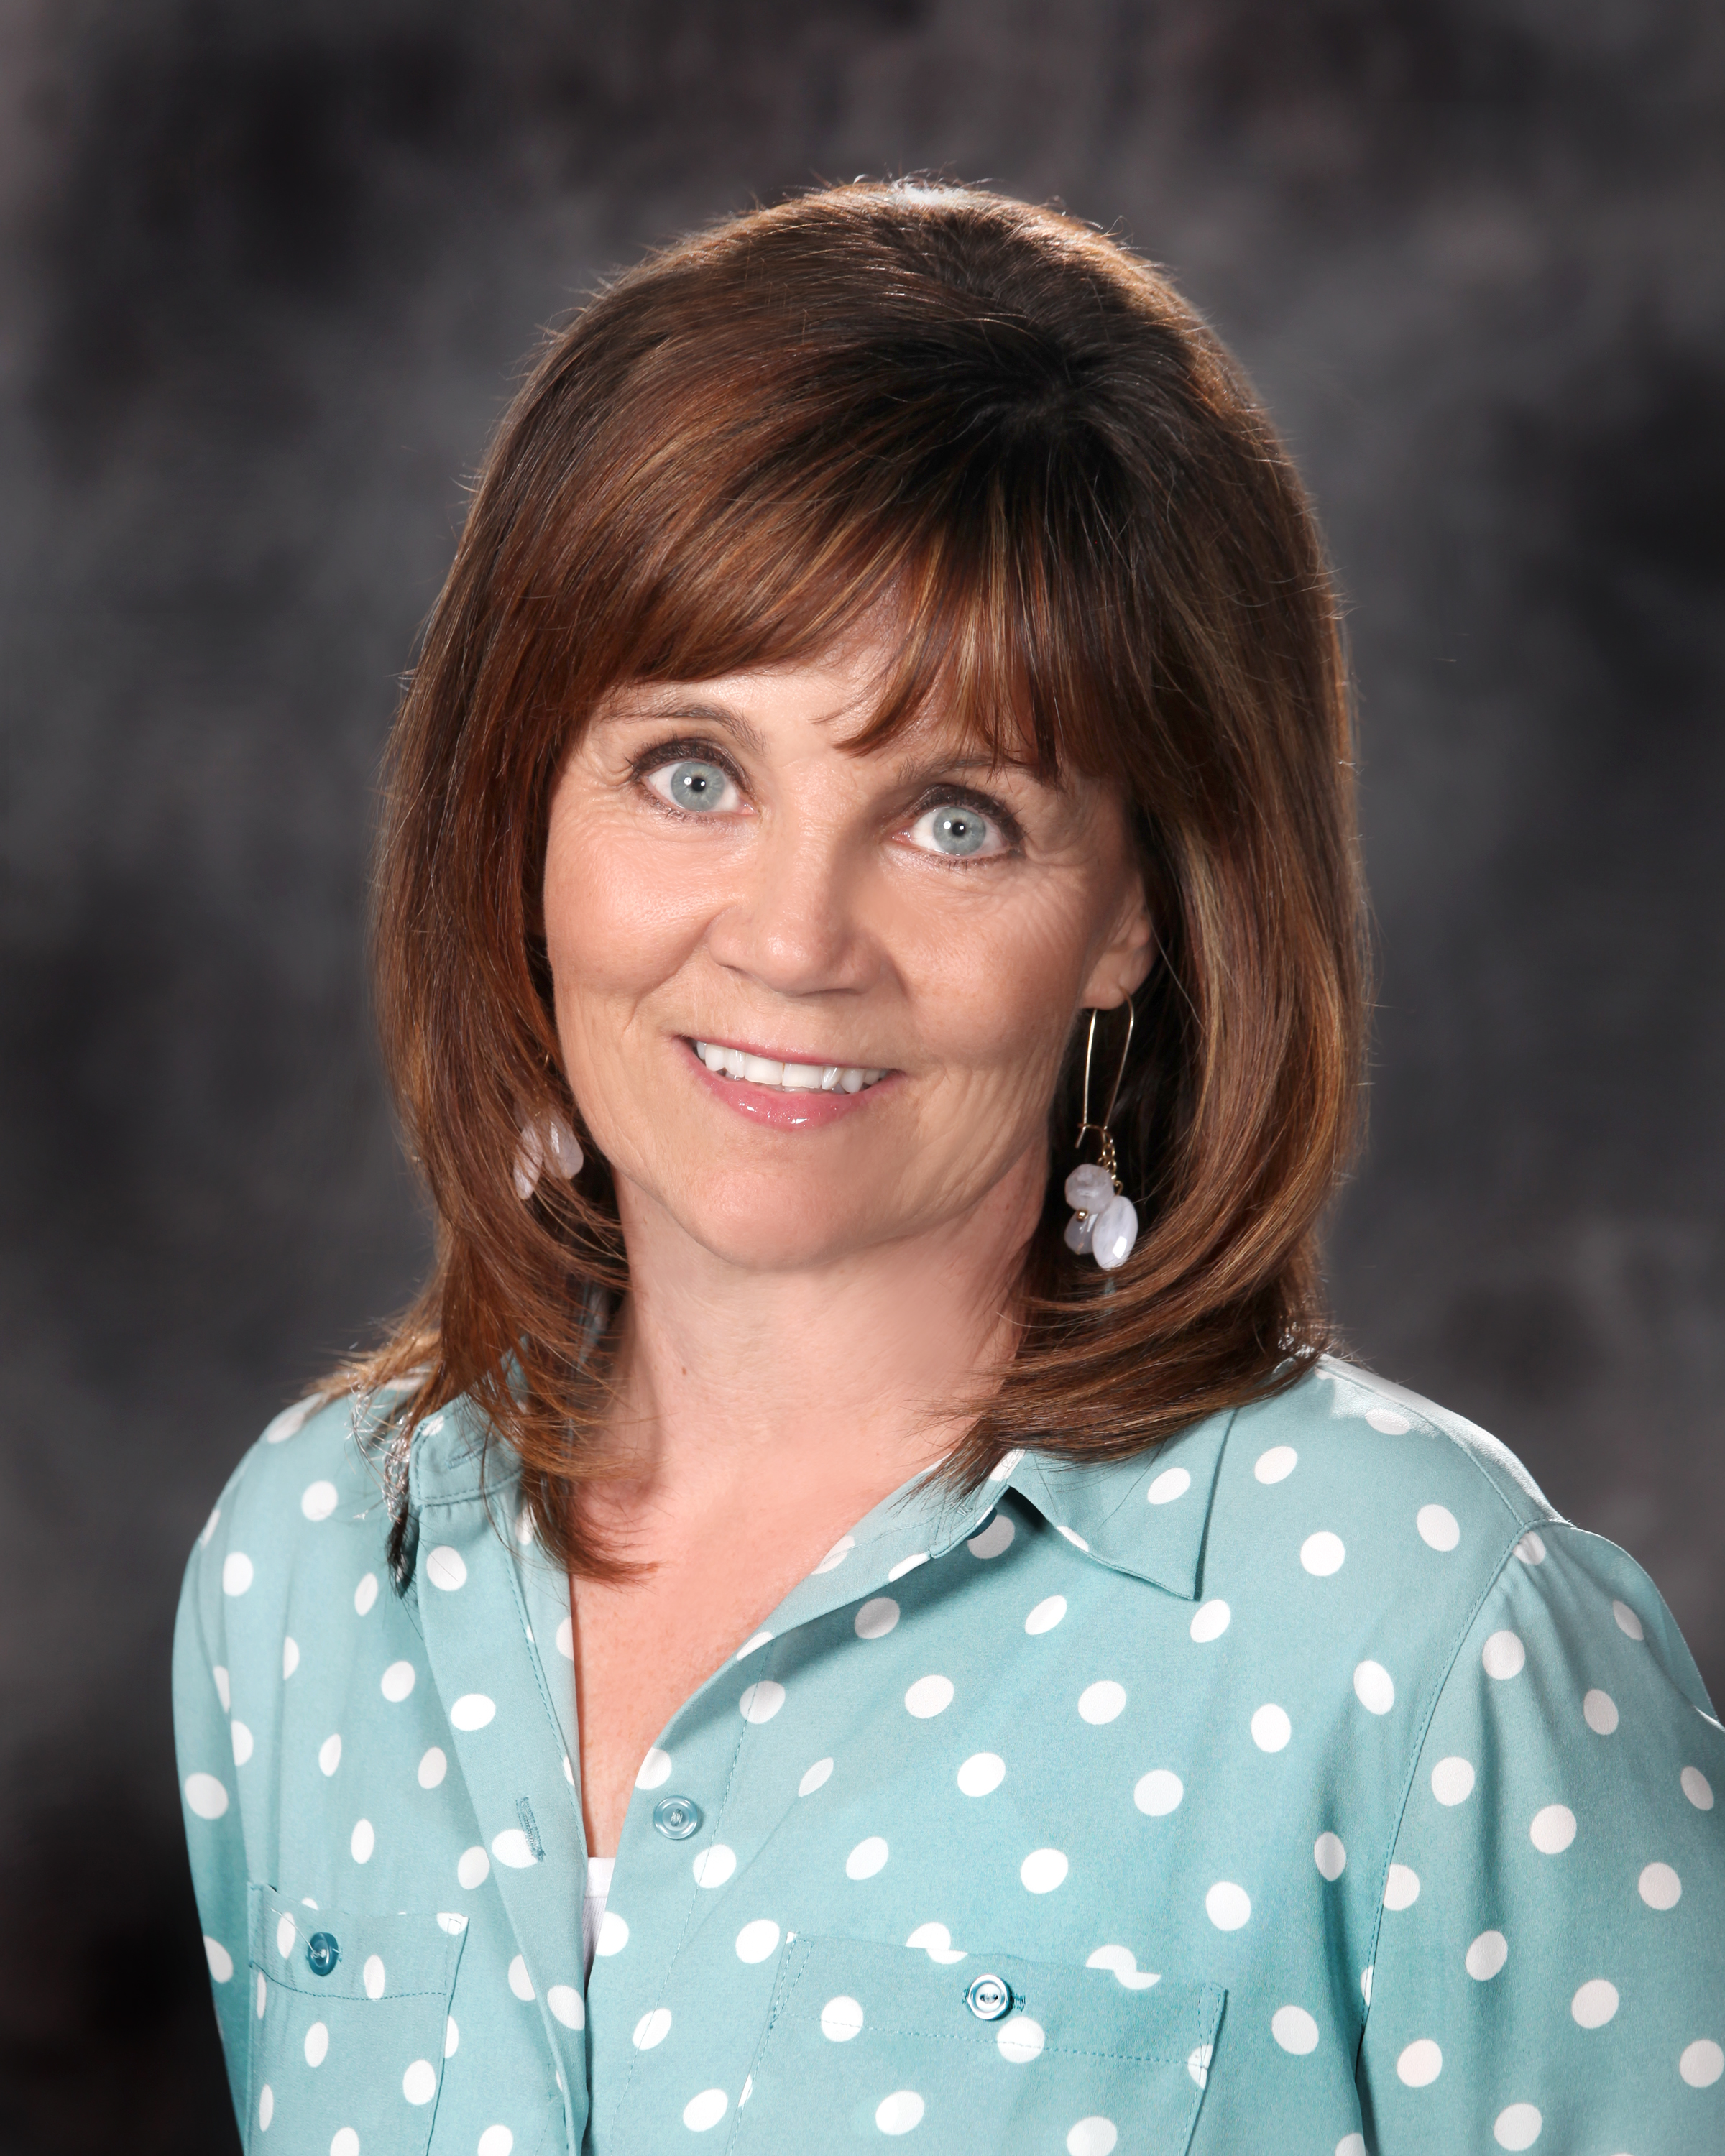 Janice Bukey, New Bridge School principal